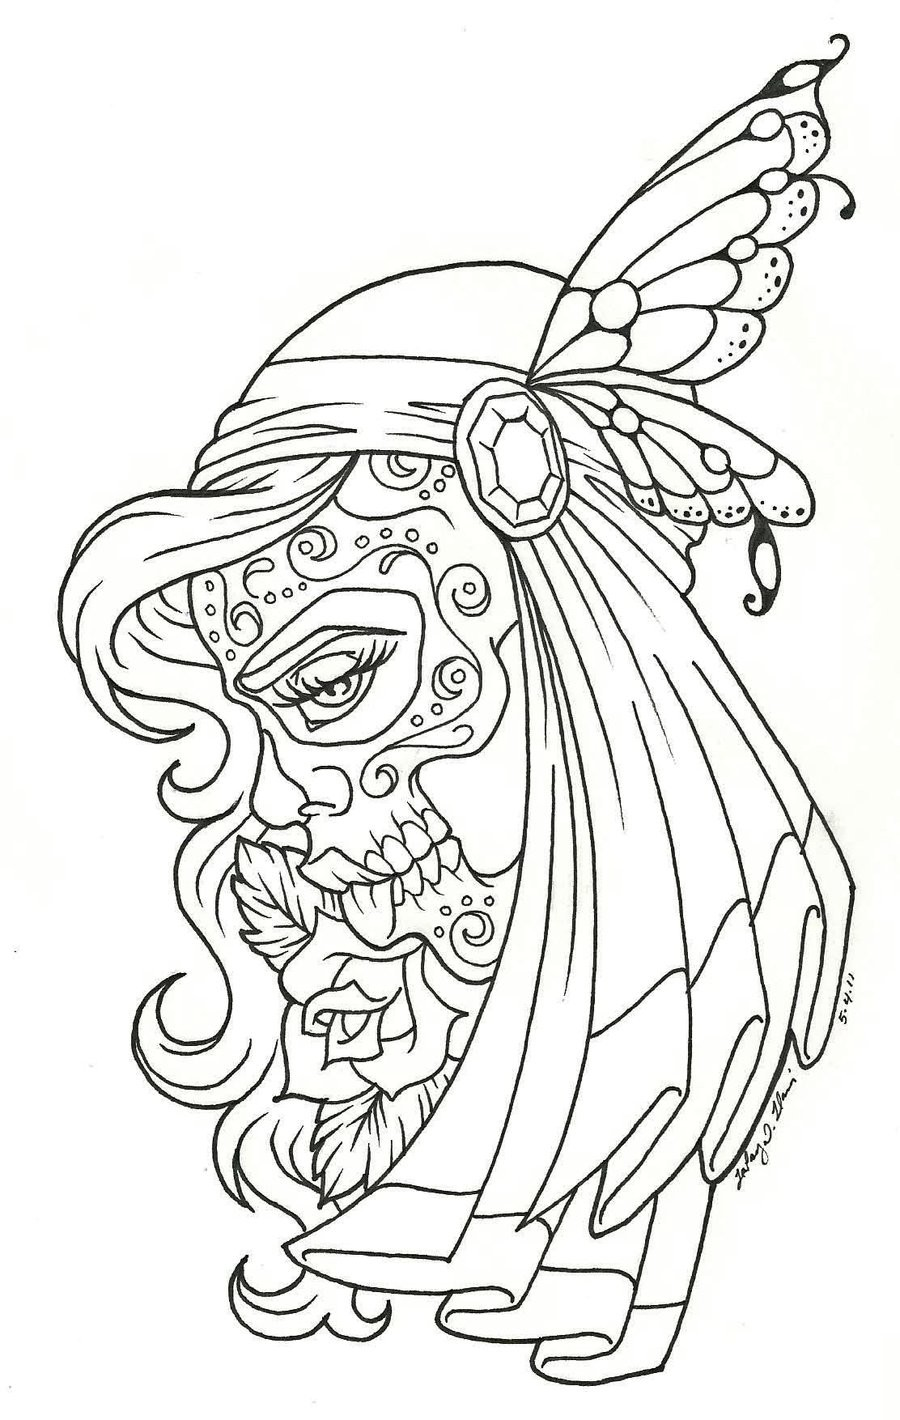 coloring pages for kids download - free printable day of the dead coloring pages best